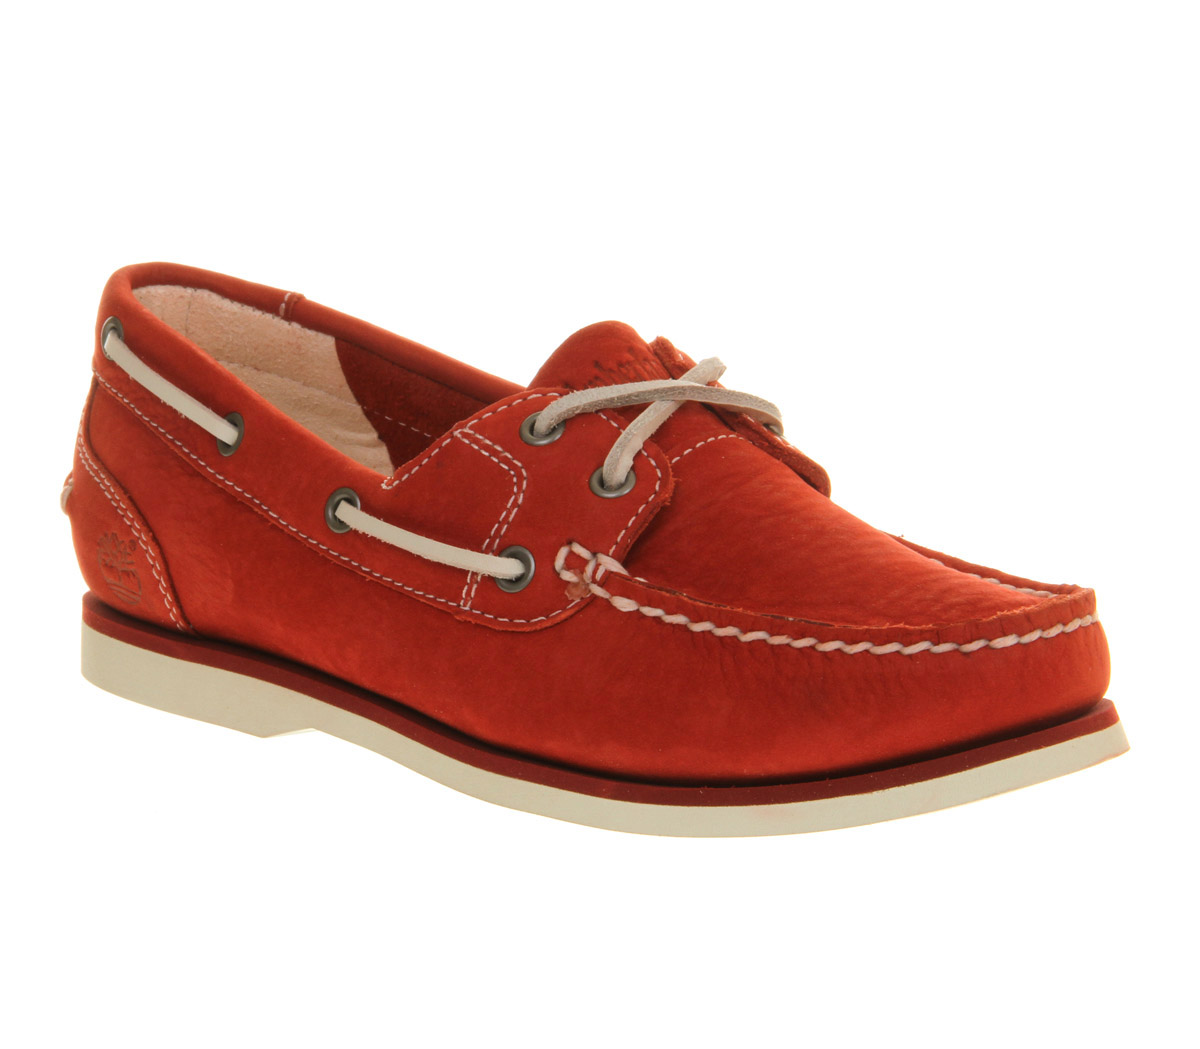 Timberland Womens Boat Shoe Classic Dark Red in Red | Lyst